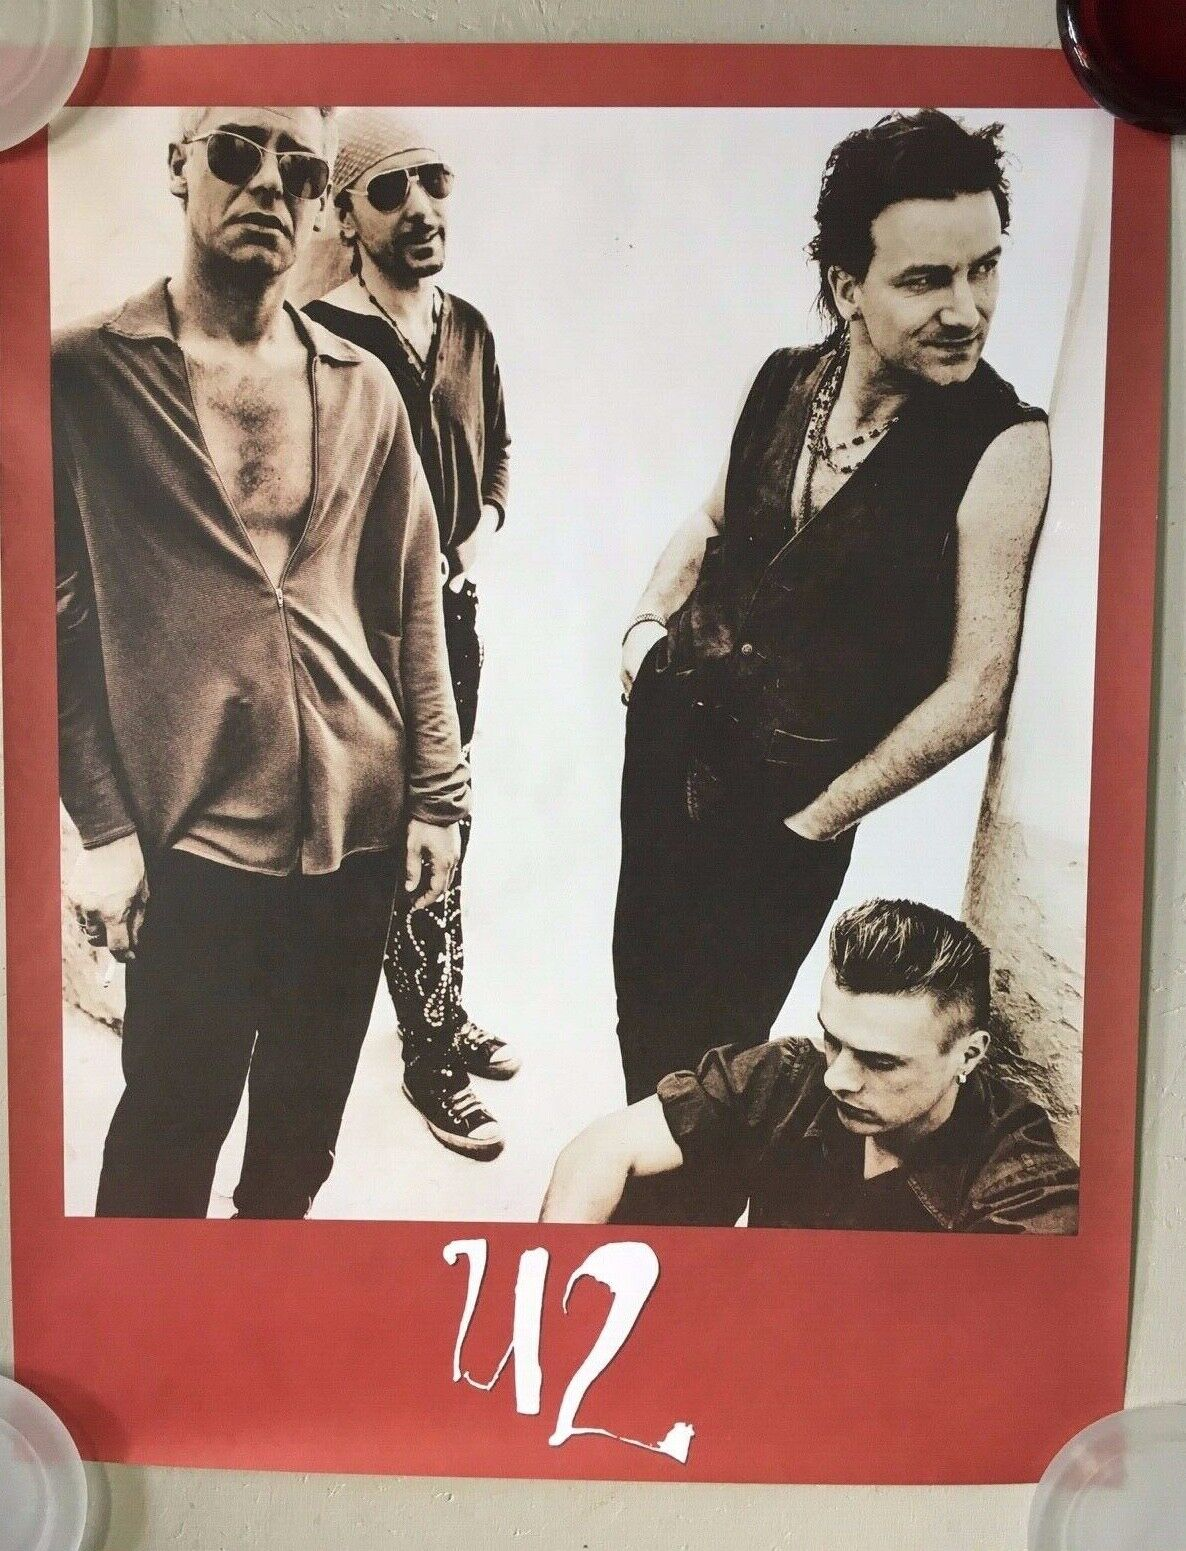 U2 - Achtung Baby - 1991 Promo Poster Matte Finish Paper - 24x3 - USA - NEW - $17.99